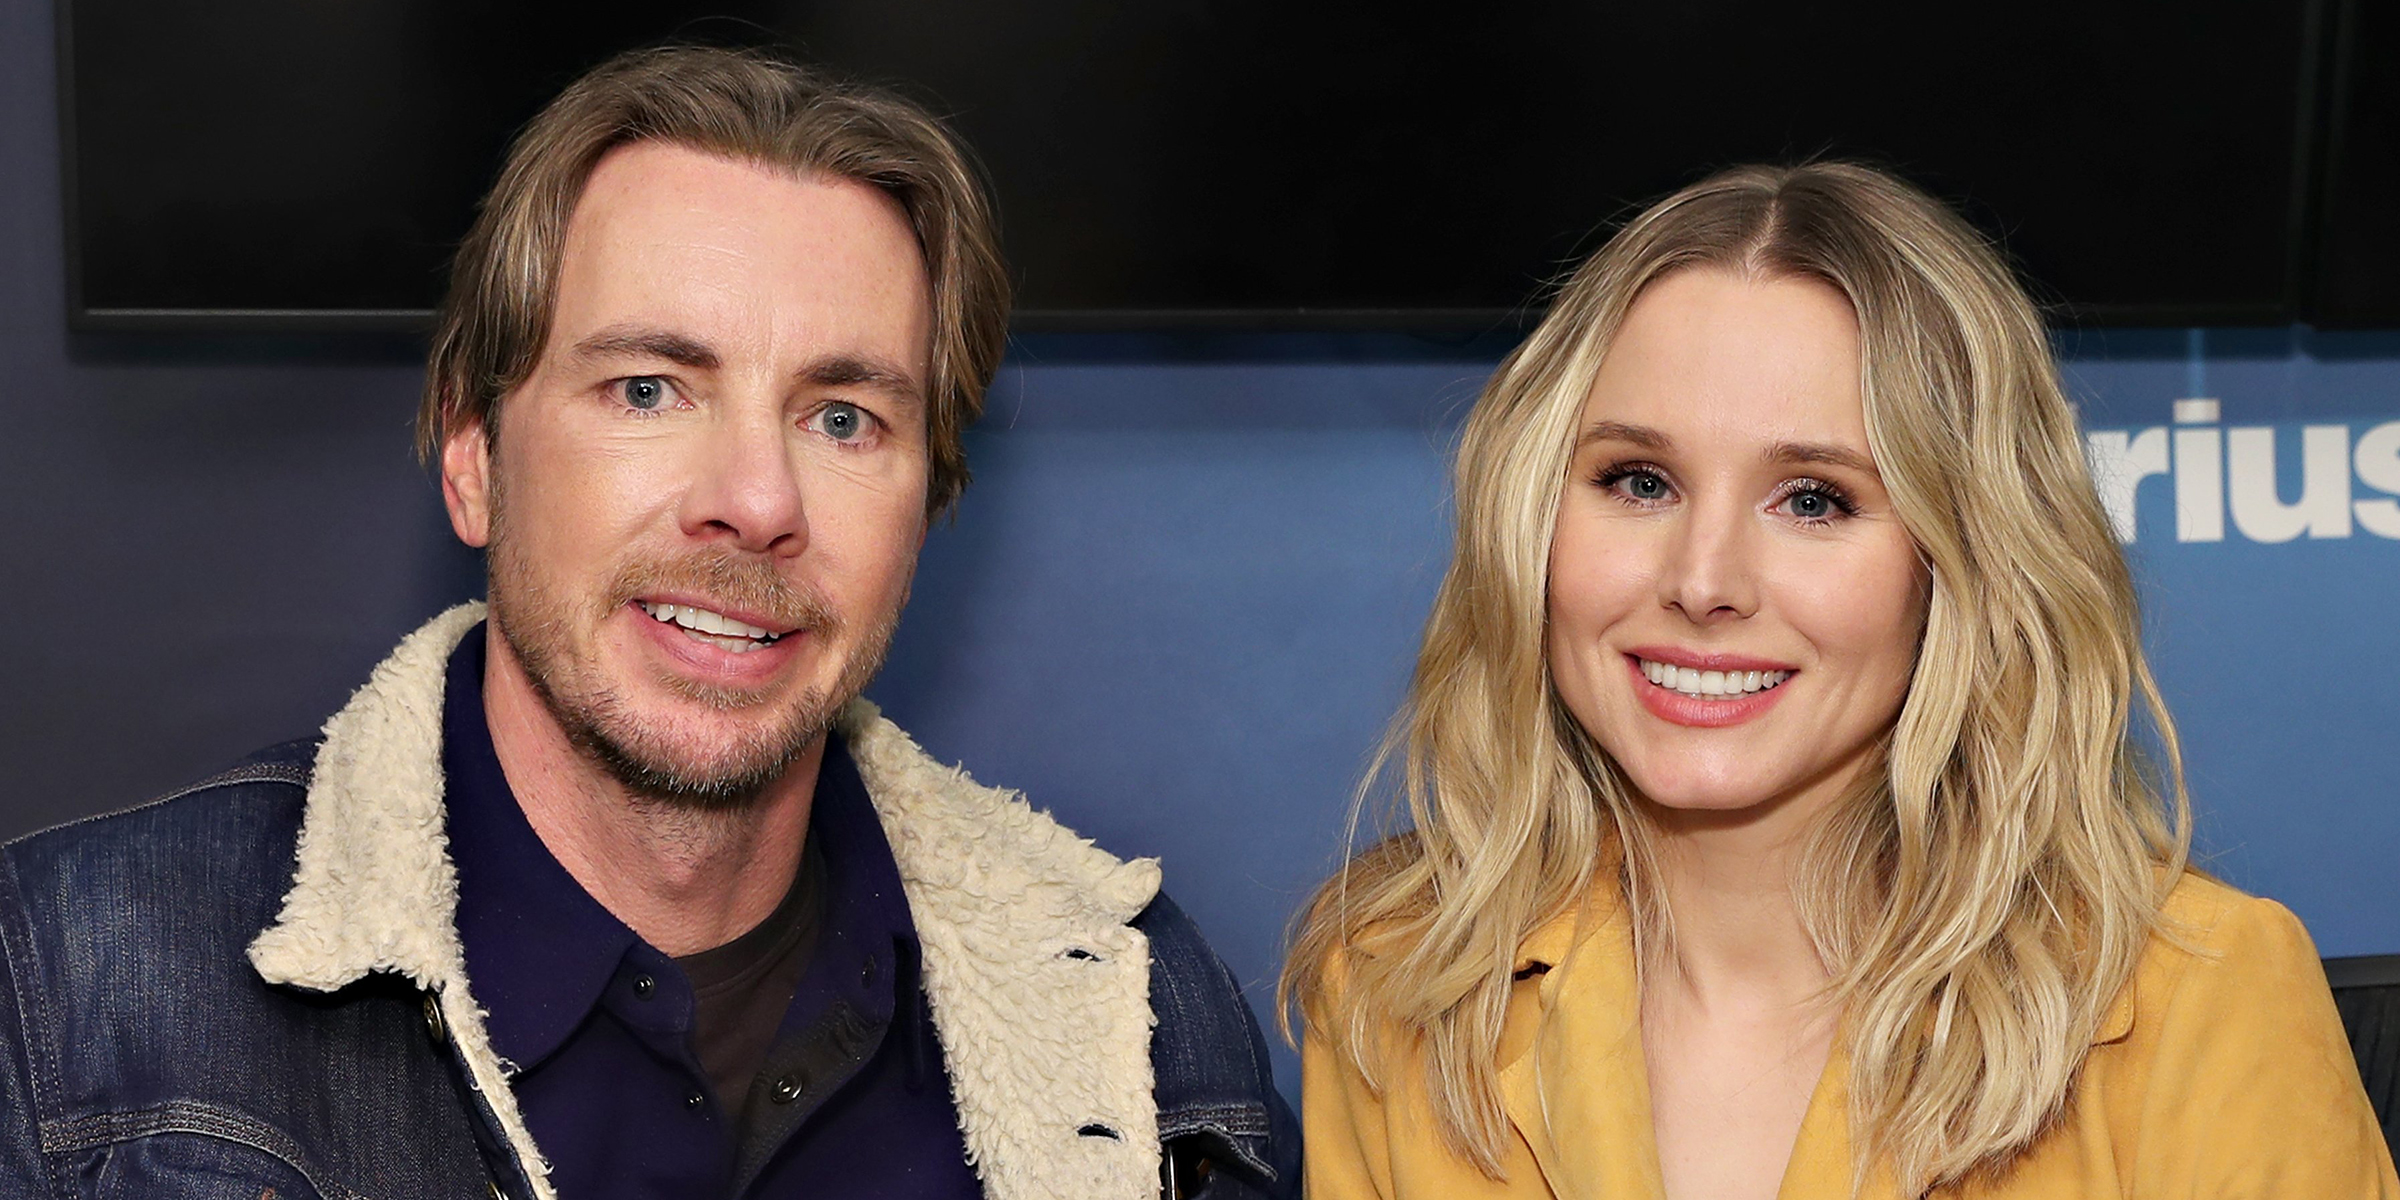 Kristen Bell on going to couples therapy with Dax Shepard